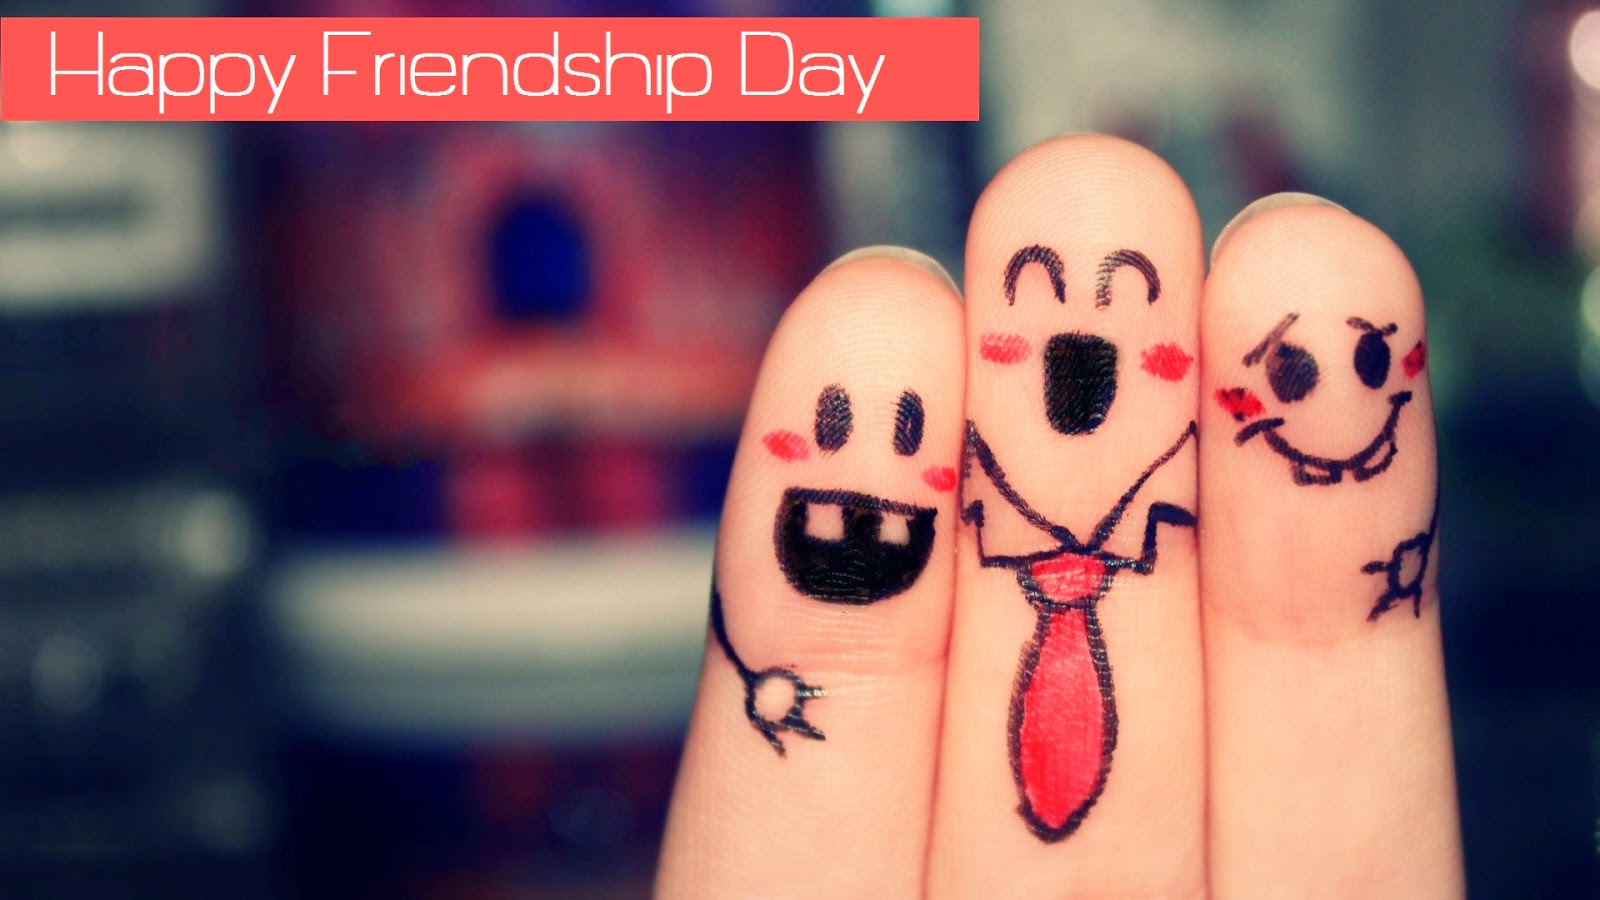 Special Happy Friendship Day 2020 Wishes Wallpapers Whatsapp Status